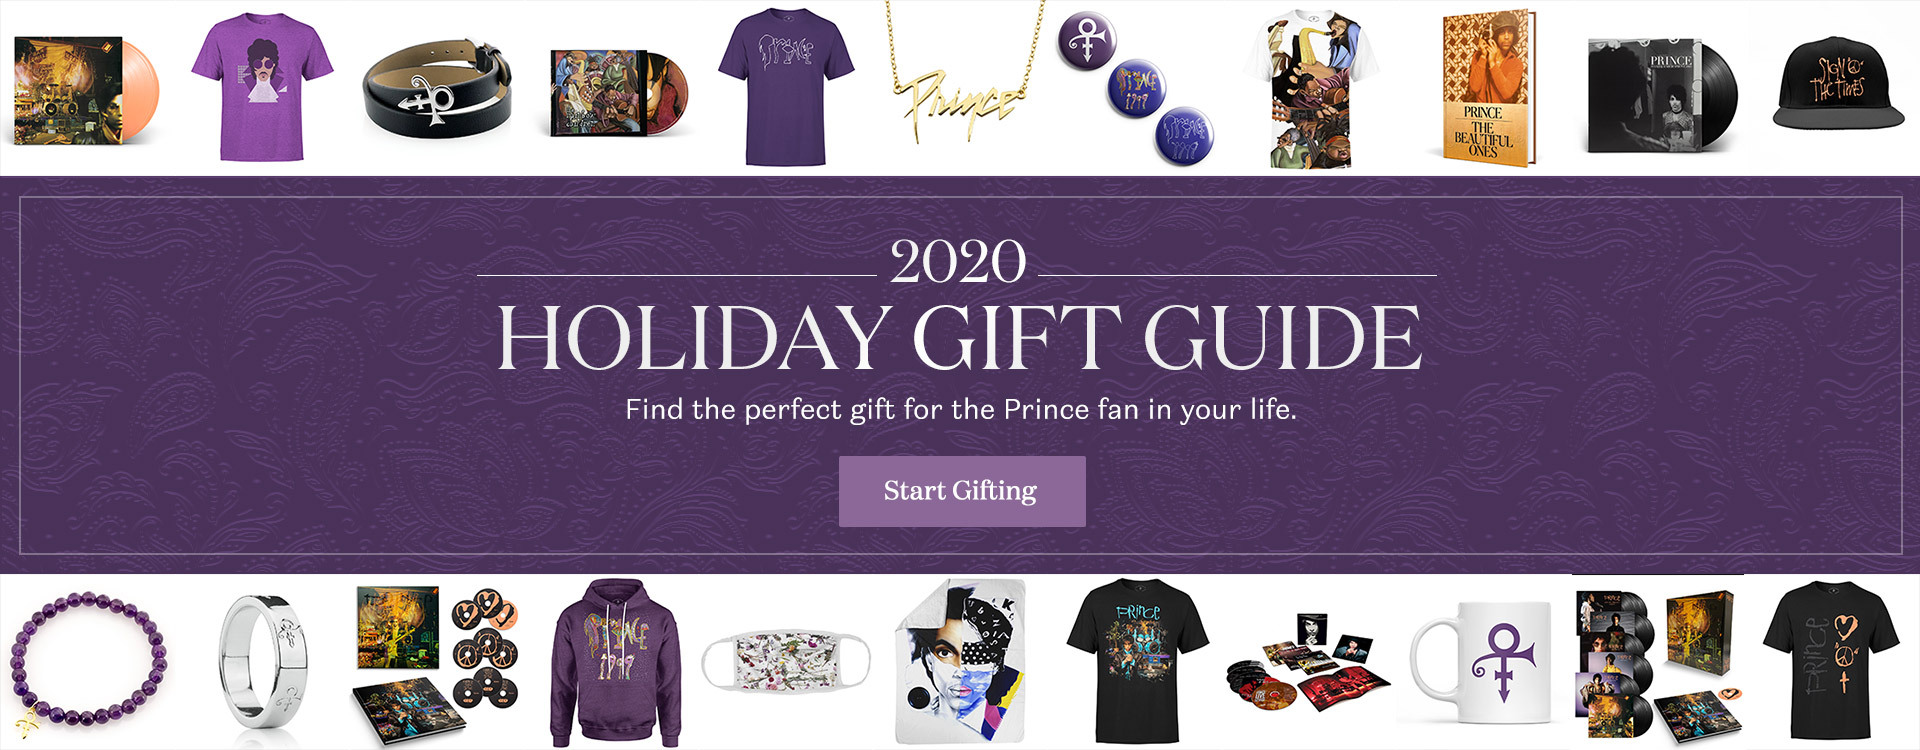 2020 Holiday Gift Guide - Find the perfect gift for the Prince fan in your life. Start Gifting!